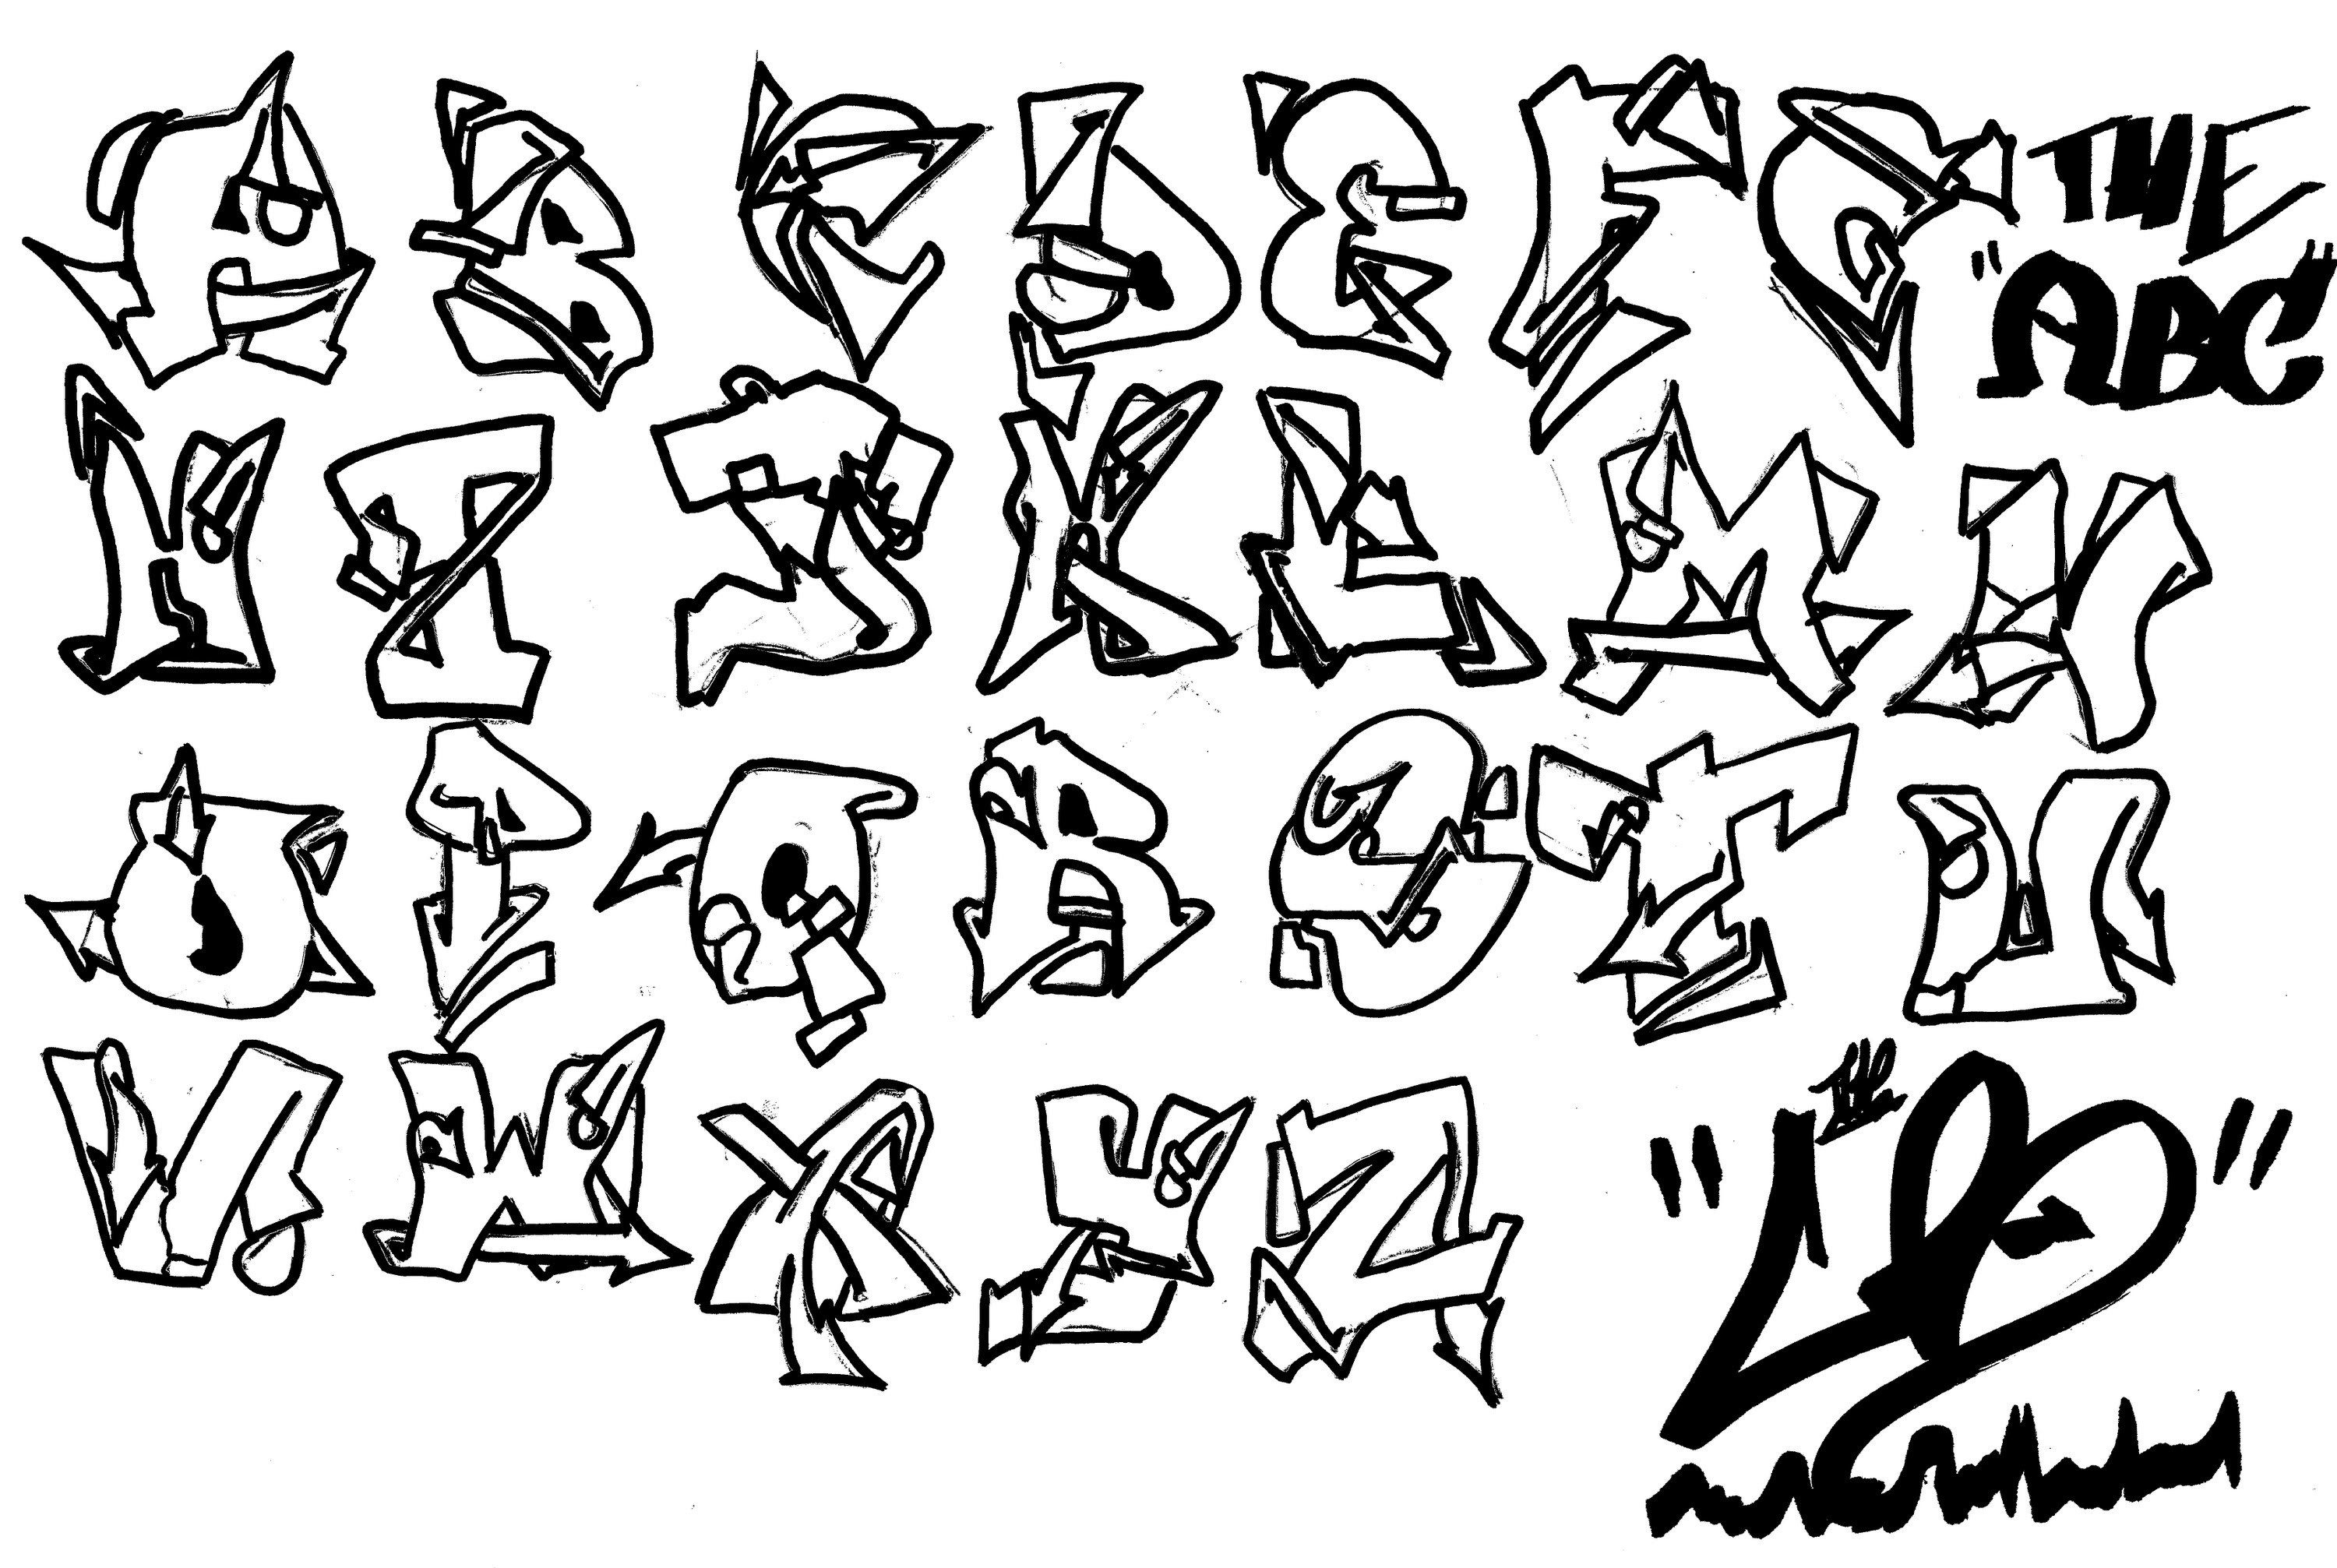 Alphabet Drawing At Getdrawings Com Free For Personal Use Alphabet